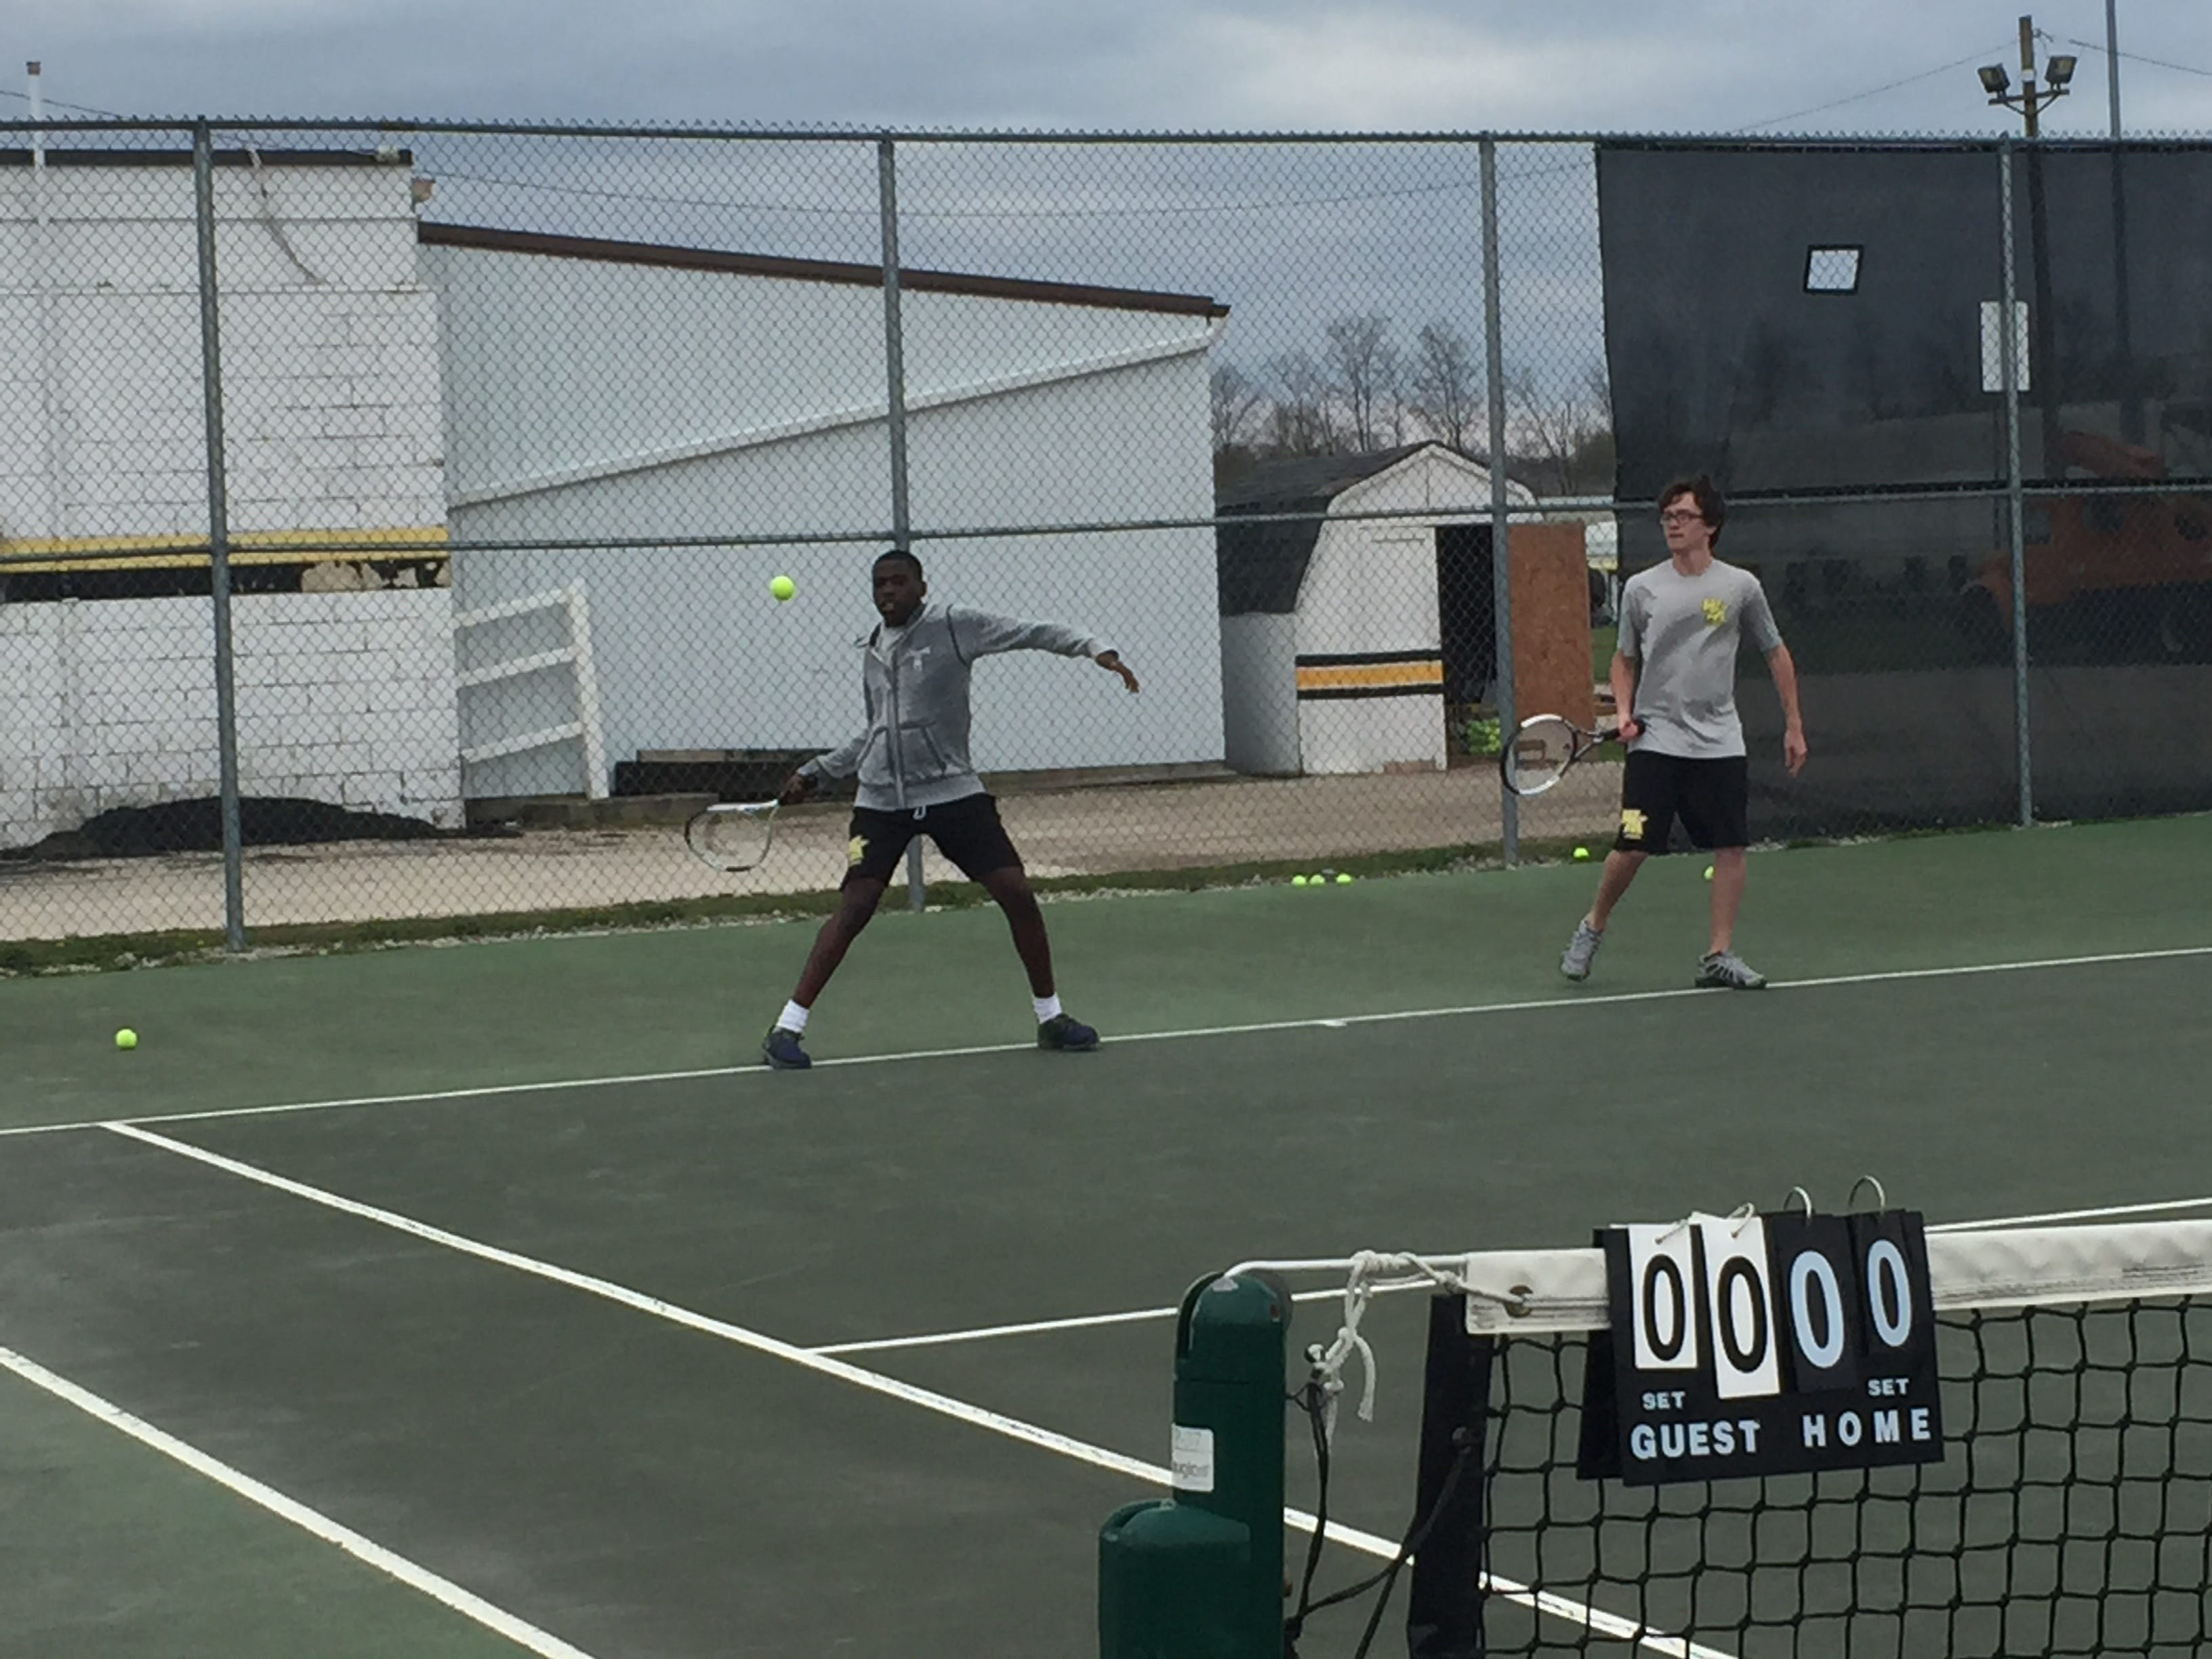 Watkins Memorial's D.J. Davis, left, drills before a recent match. Davis and junior Robert Speaks have had a strong season at No. 1 doubles for the Warriors.